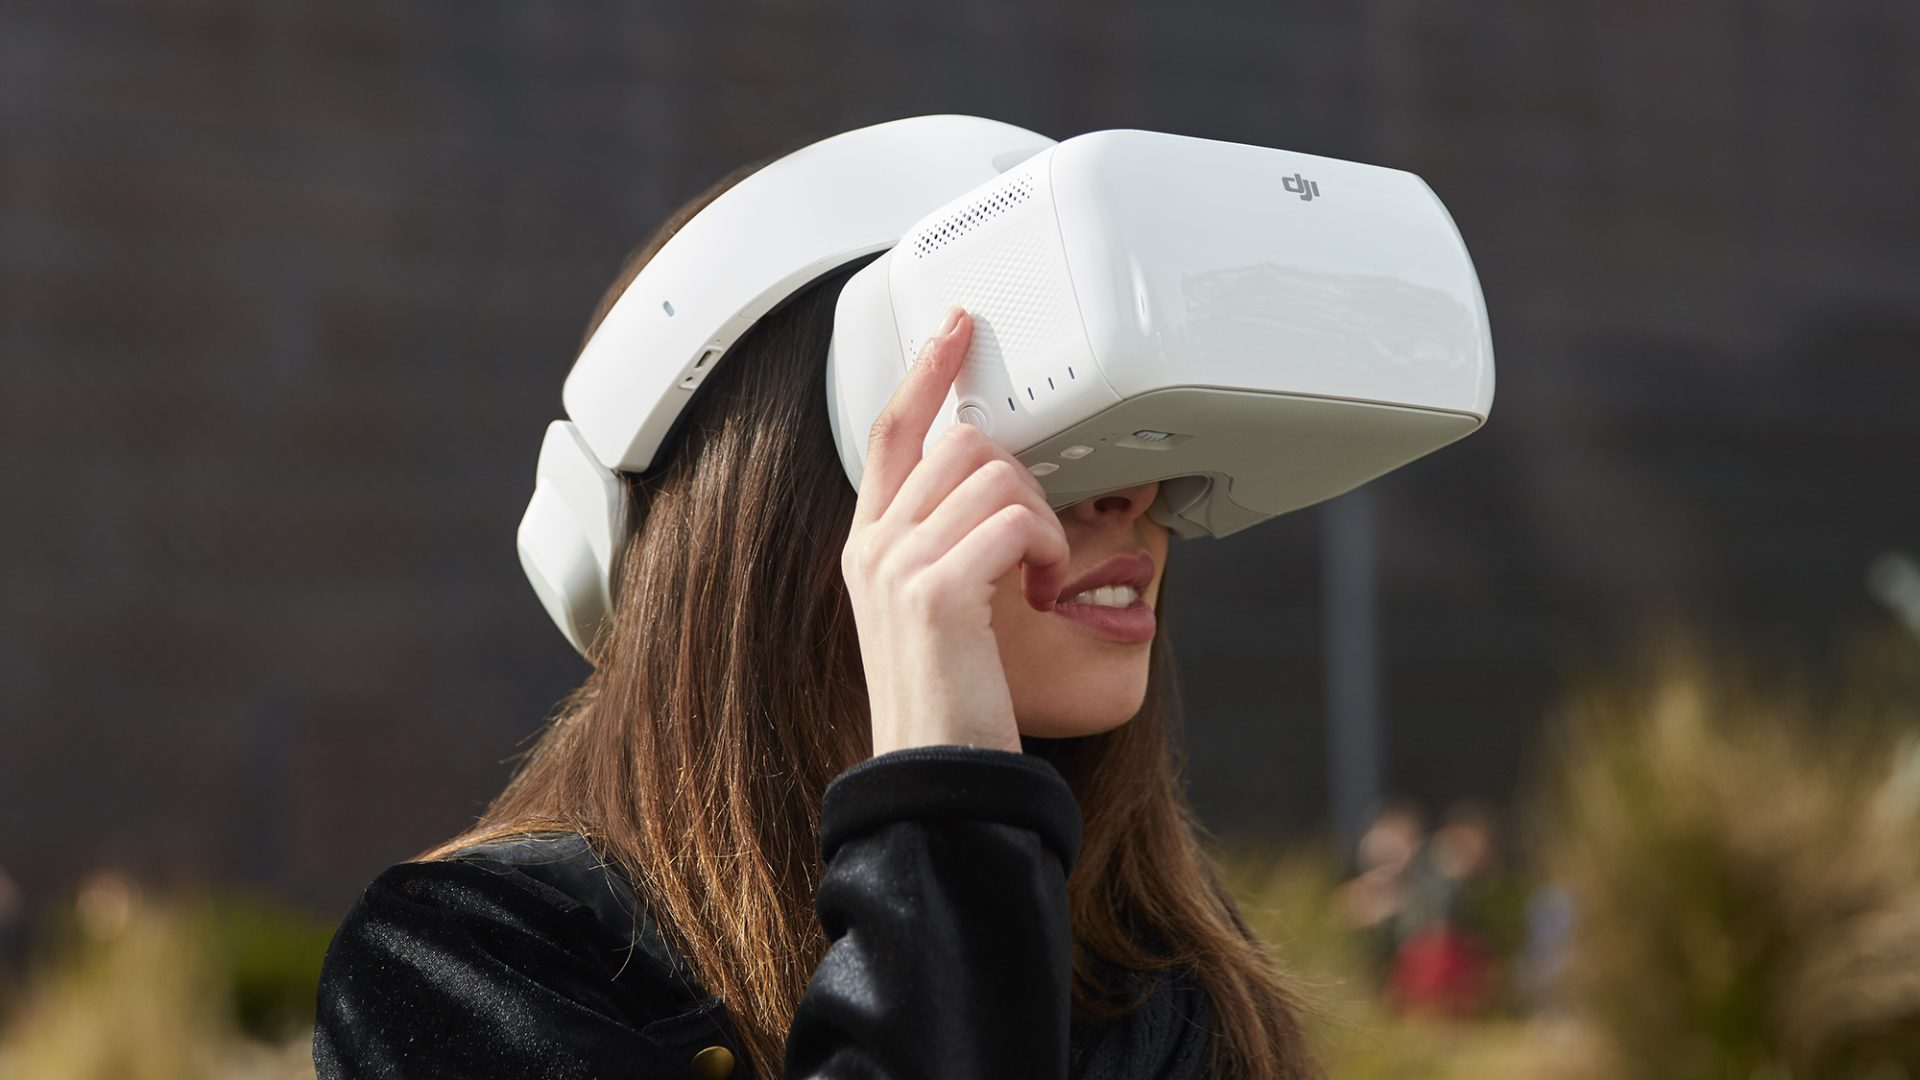 DJI is now accepting pre-orders for FPV goggles